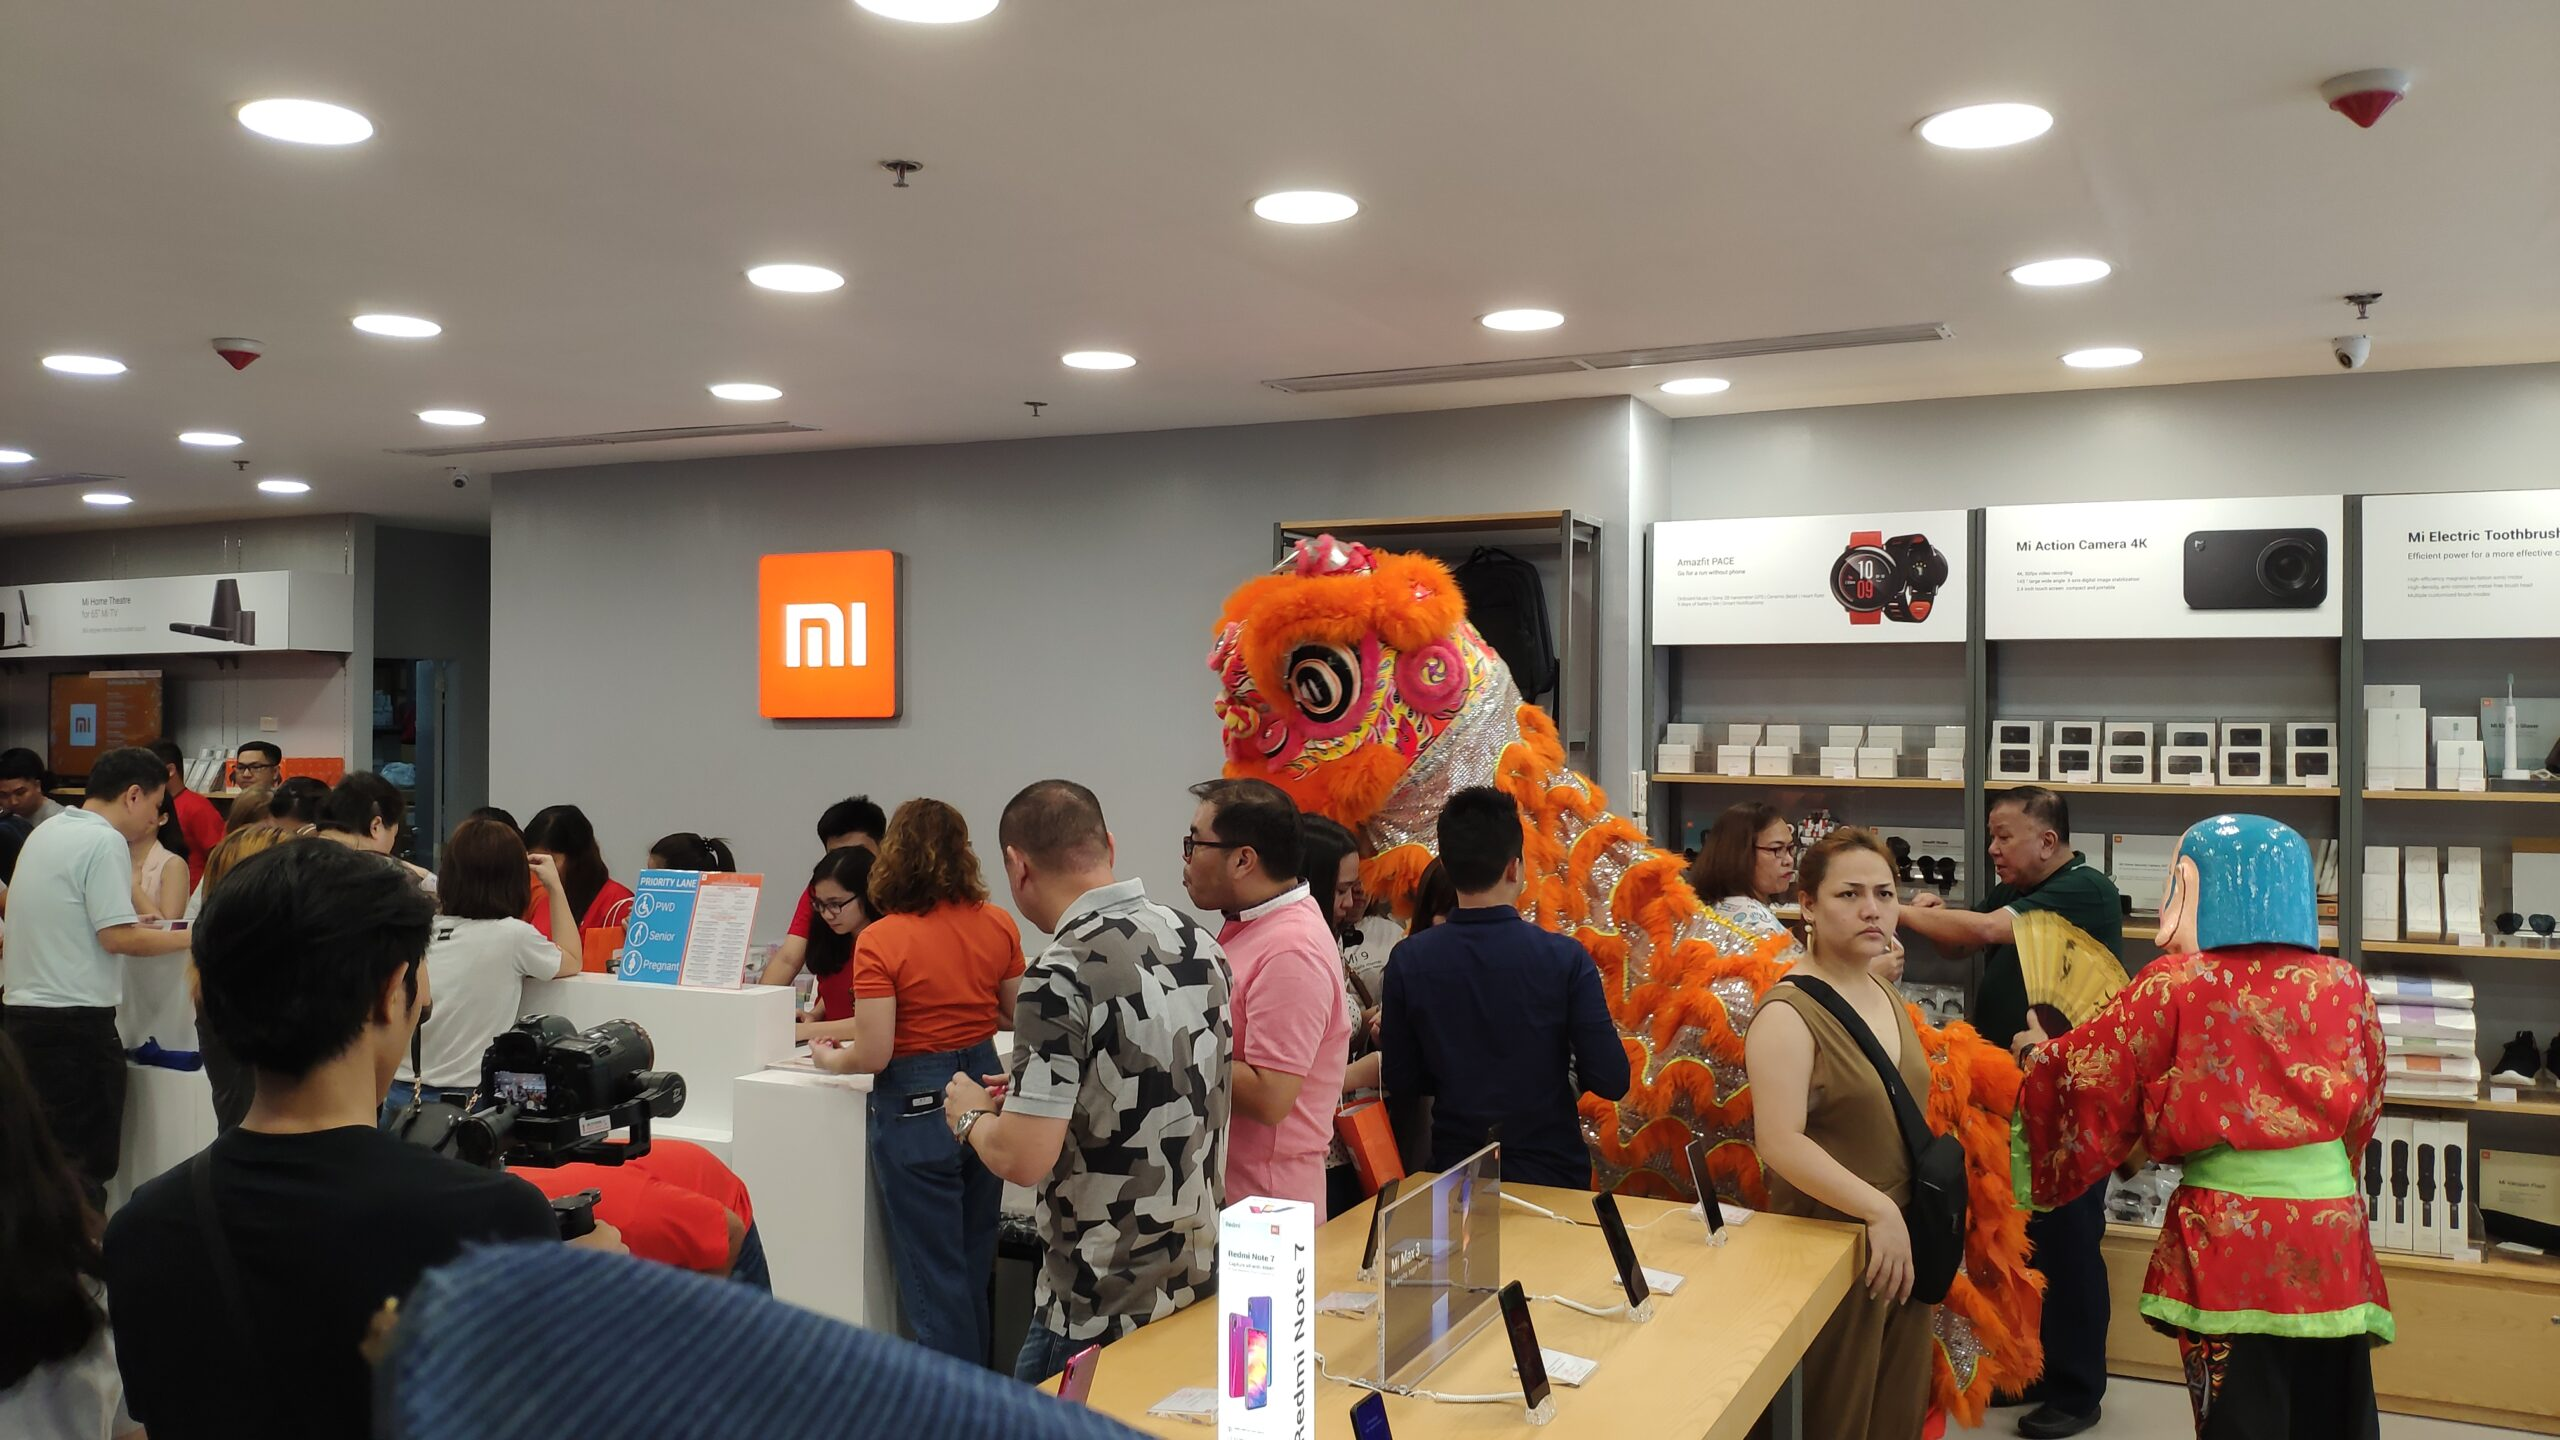 8th Store of Mi Philippines Opened Today March 30th at Lucky Chinatown Mall!